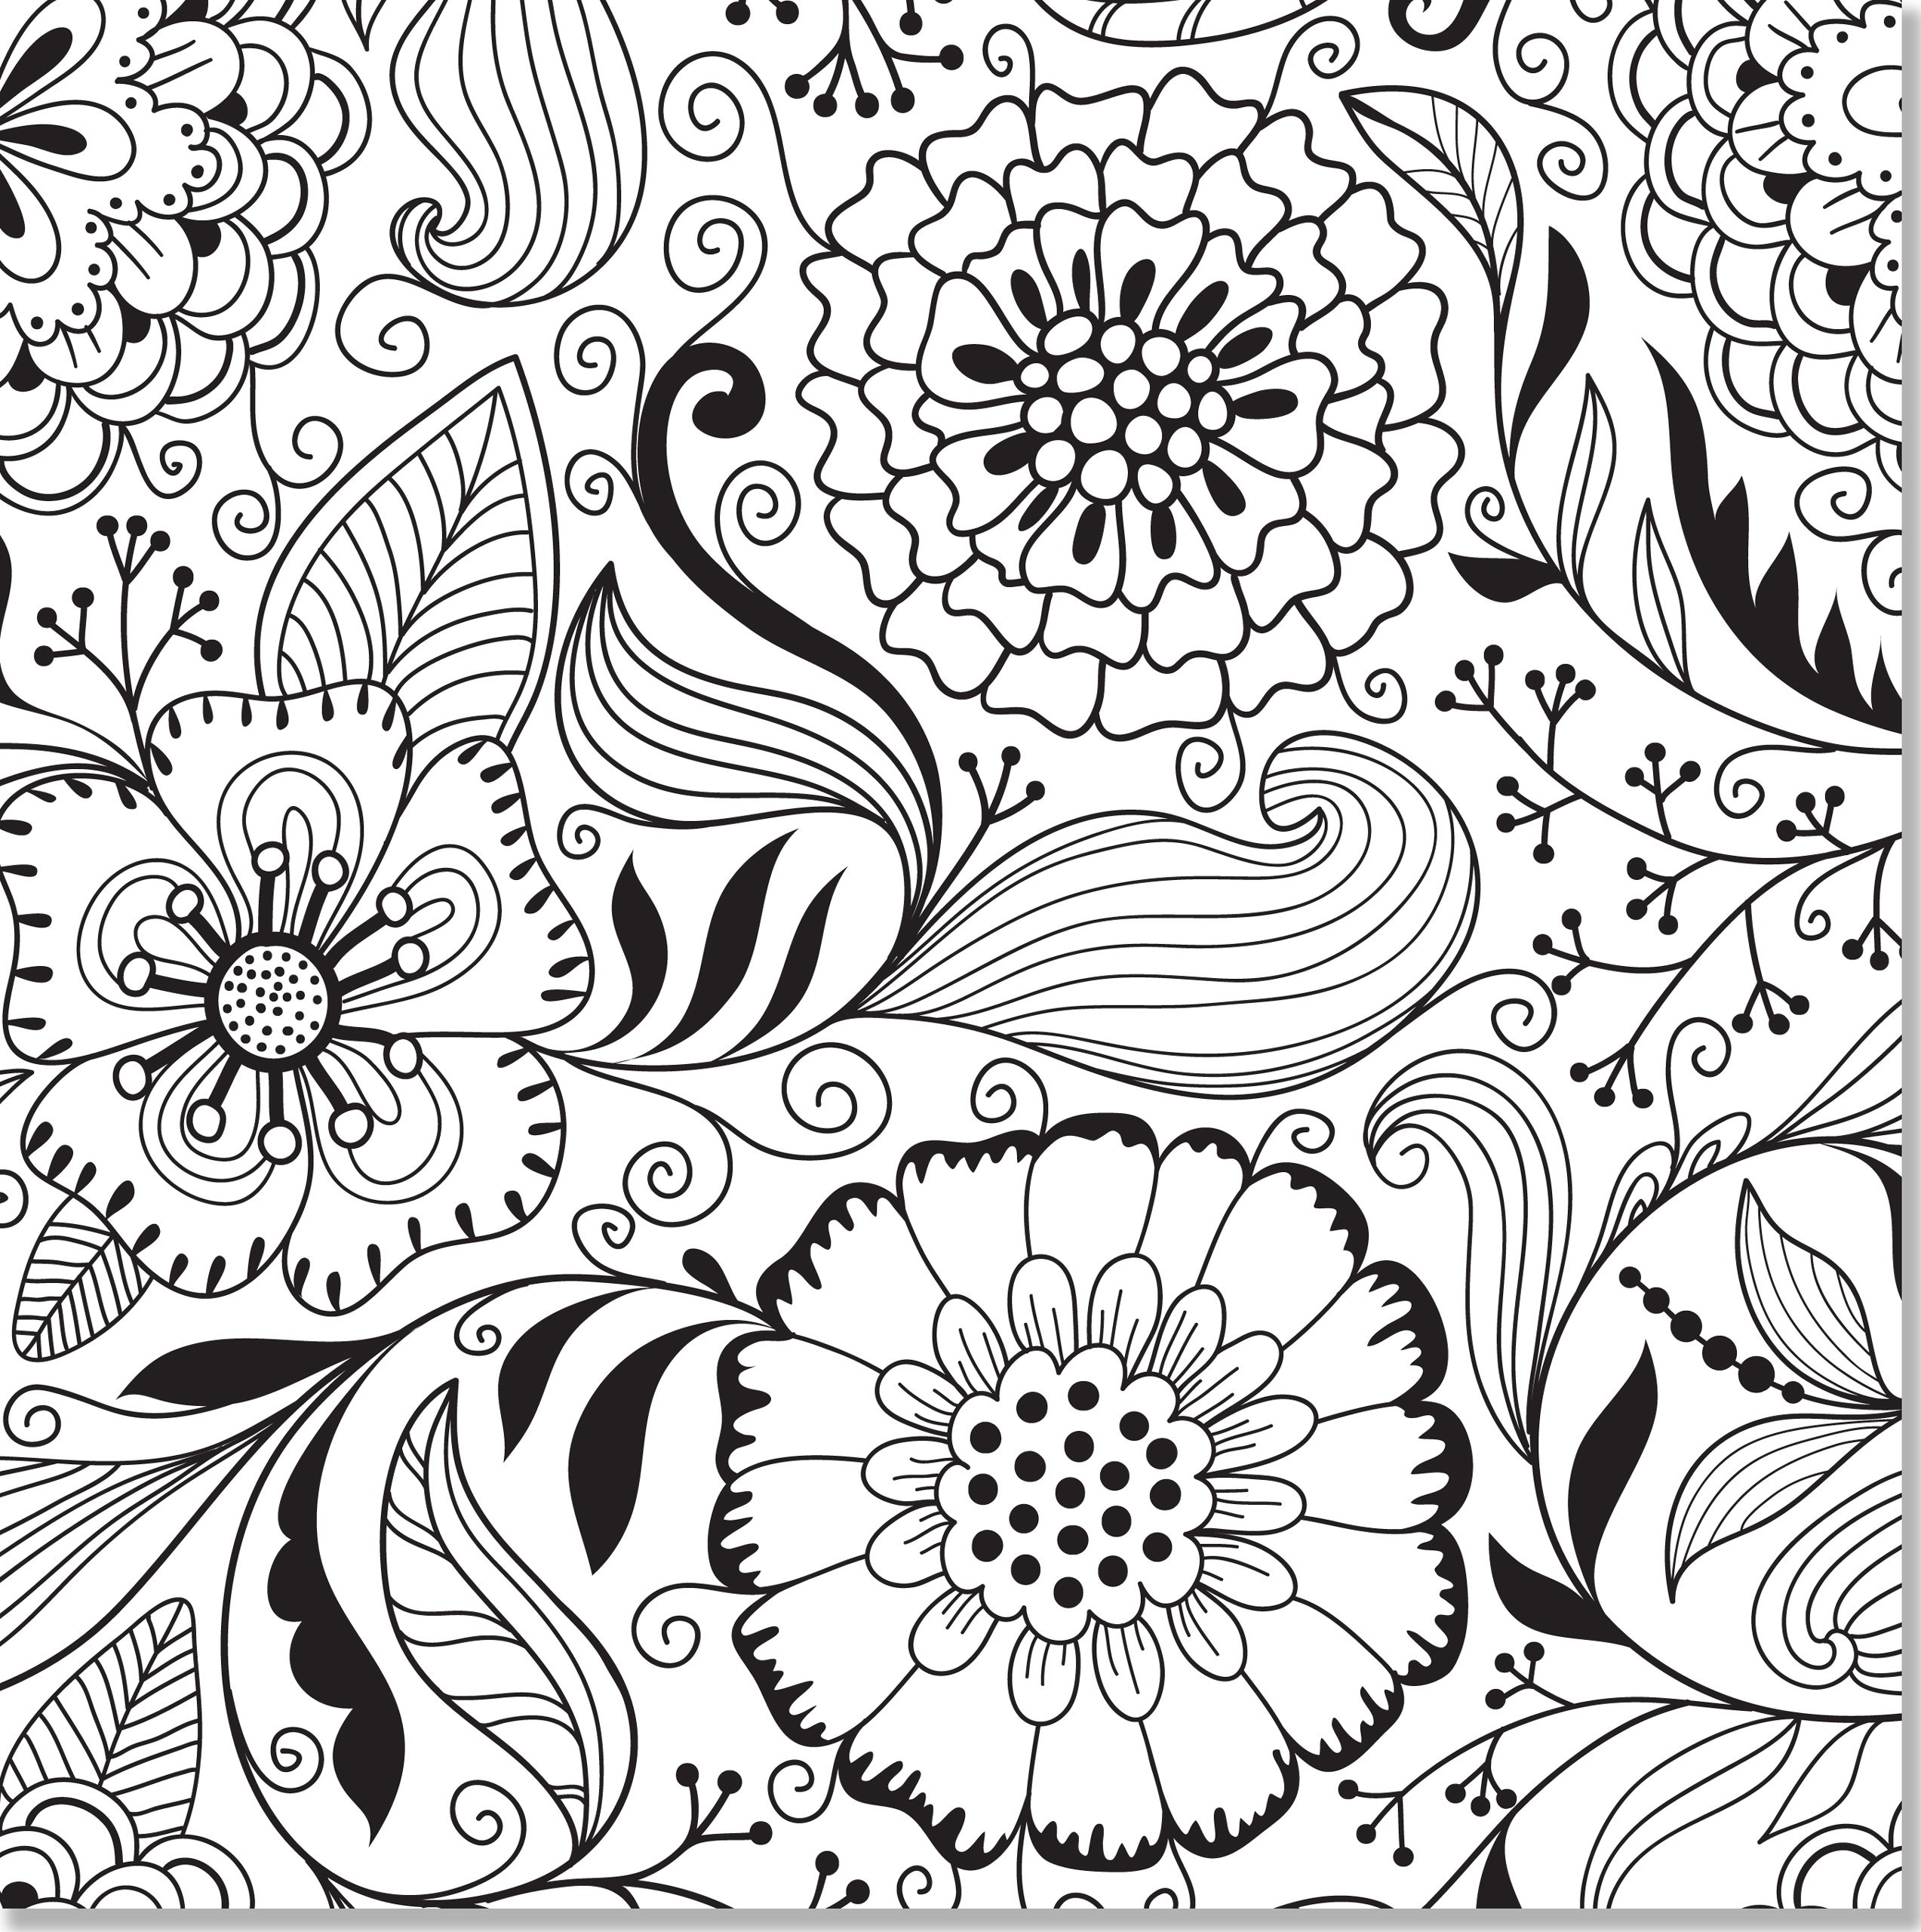 amazoncom floral designs adult coloring book 31 stress relieving designs studio 9781441317452 peter pauper press books - Free Download Colouring Book